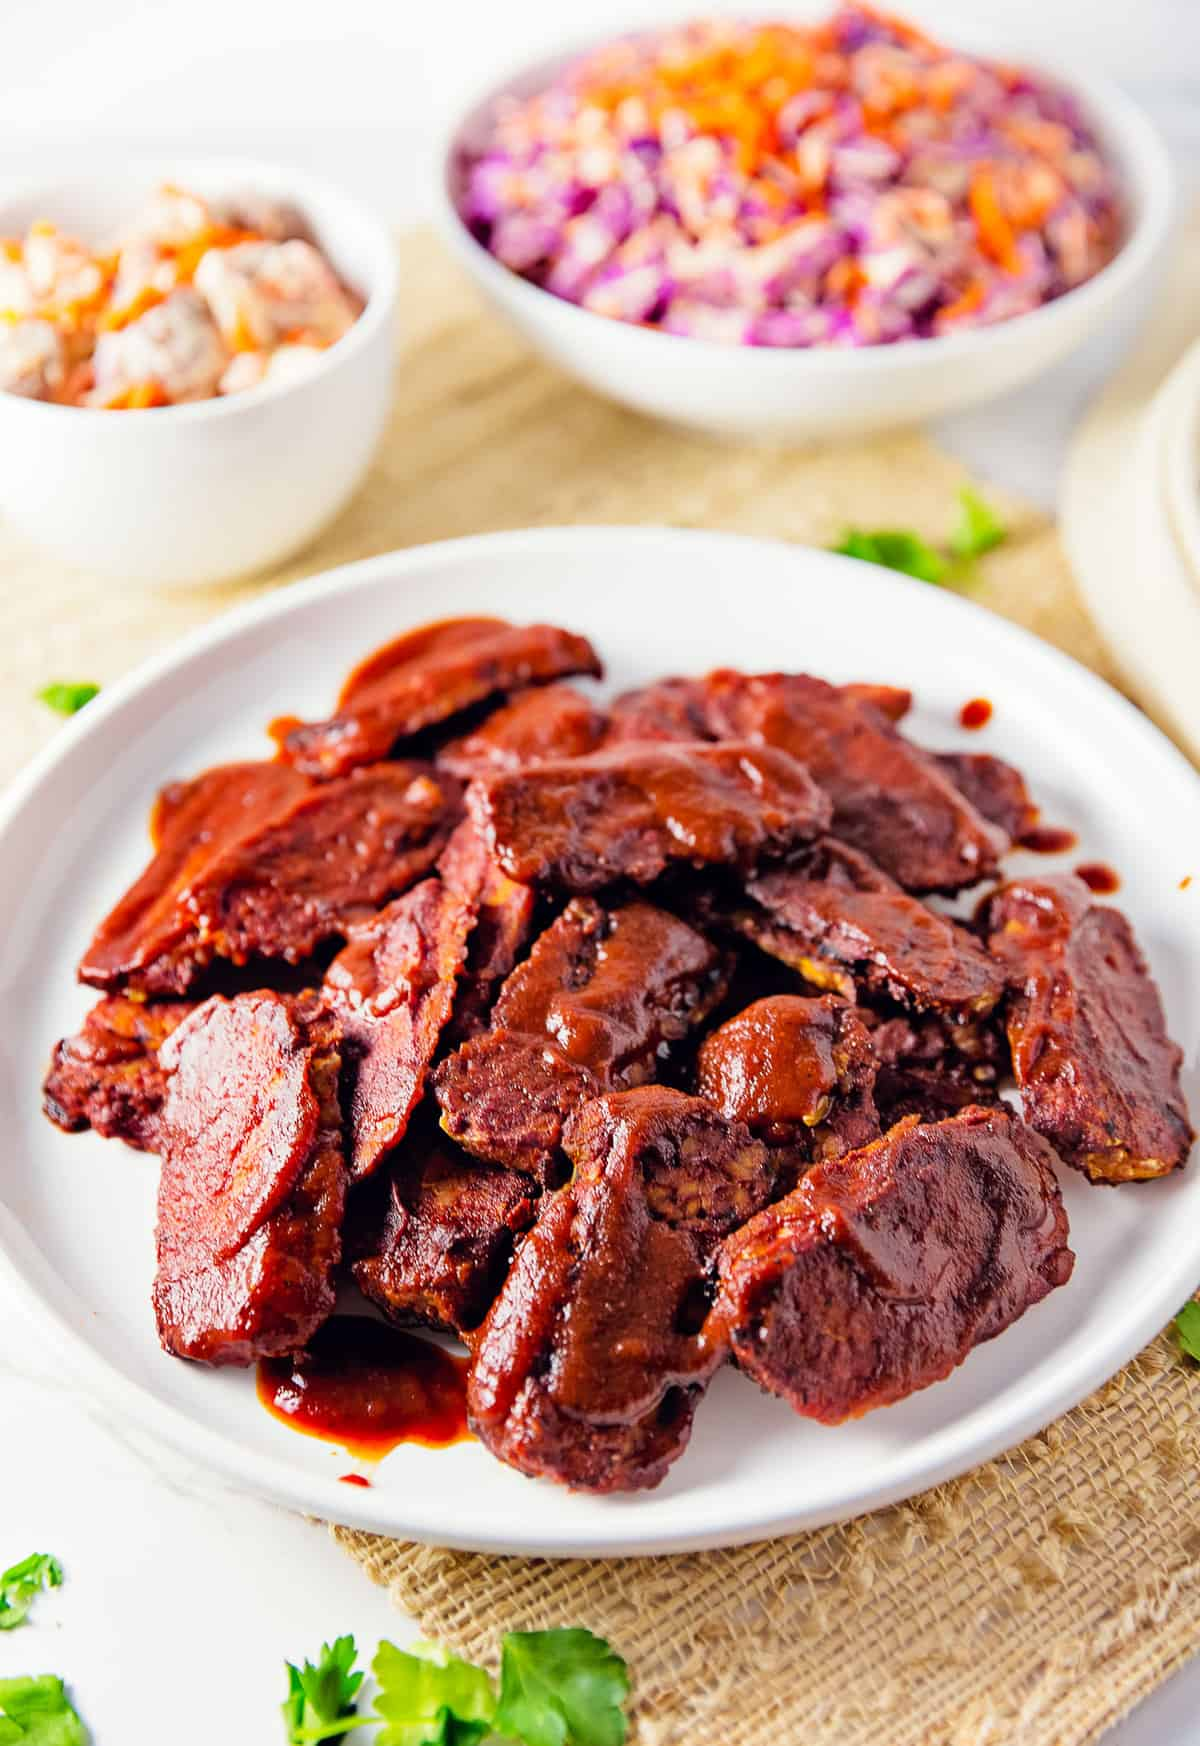 Texas Style Barbecue Tempeh, vegan, vegetarian, whole food plant based, gluten free, recipe, wfpb, healthy, oil free, no refined sugar, no oil, refined sugar free, dinner, side, side dish, dairy free, dinner party, entertaining